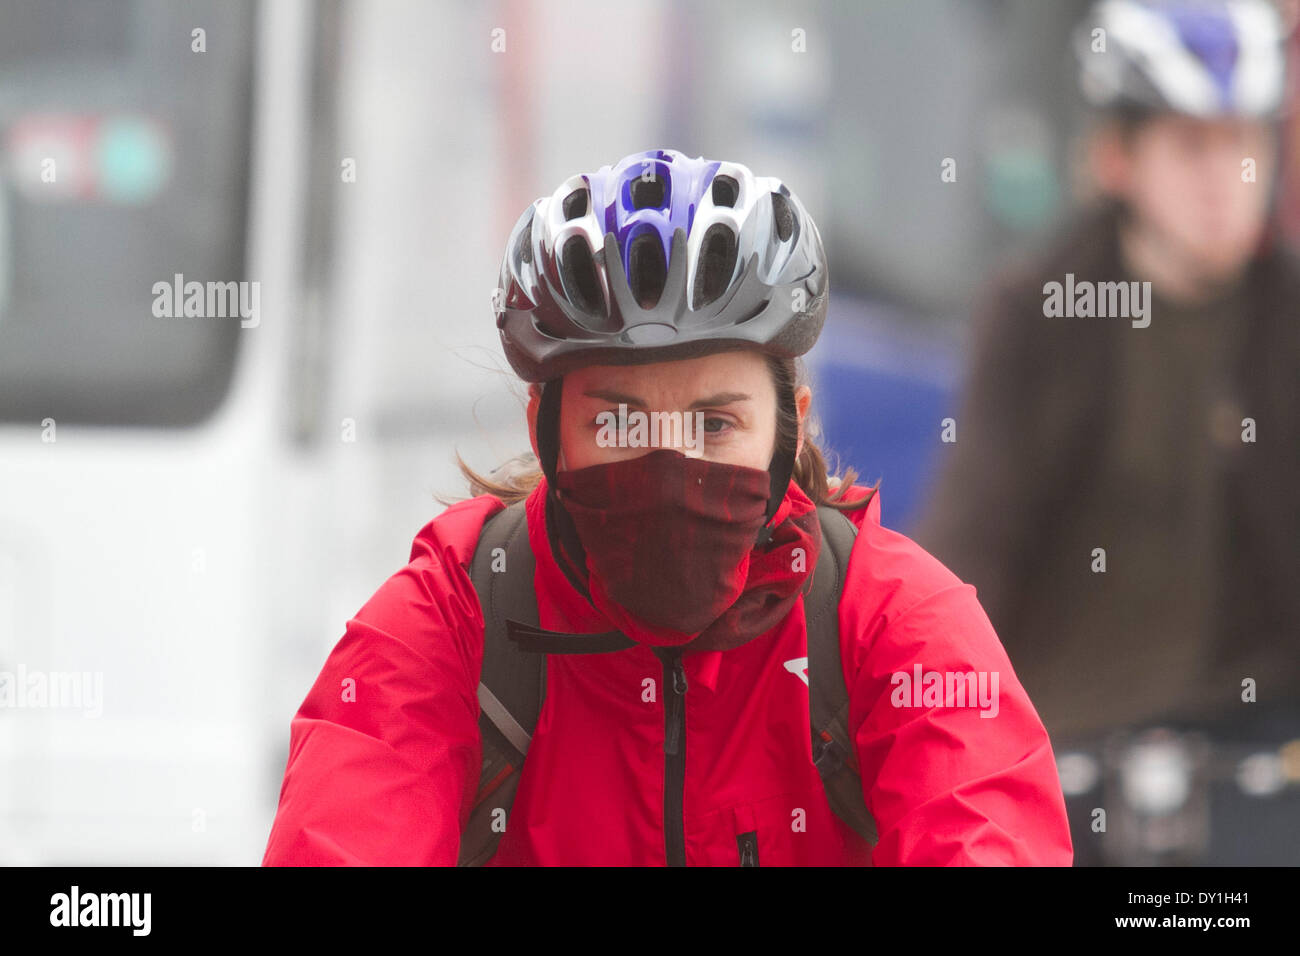 London, UK. 3rd April 2014. A cyclist with a mask to protect from the Sahara smog and pollutants  as (DEFRA) Department for Environment Food and Rural Affairs warned of a high risk of air pollution in England caused by a mix of  European emissions and dust from the Sahara. Credit:  amer ghazzal/Alamy Live News - Stock Image